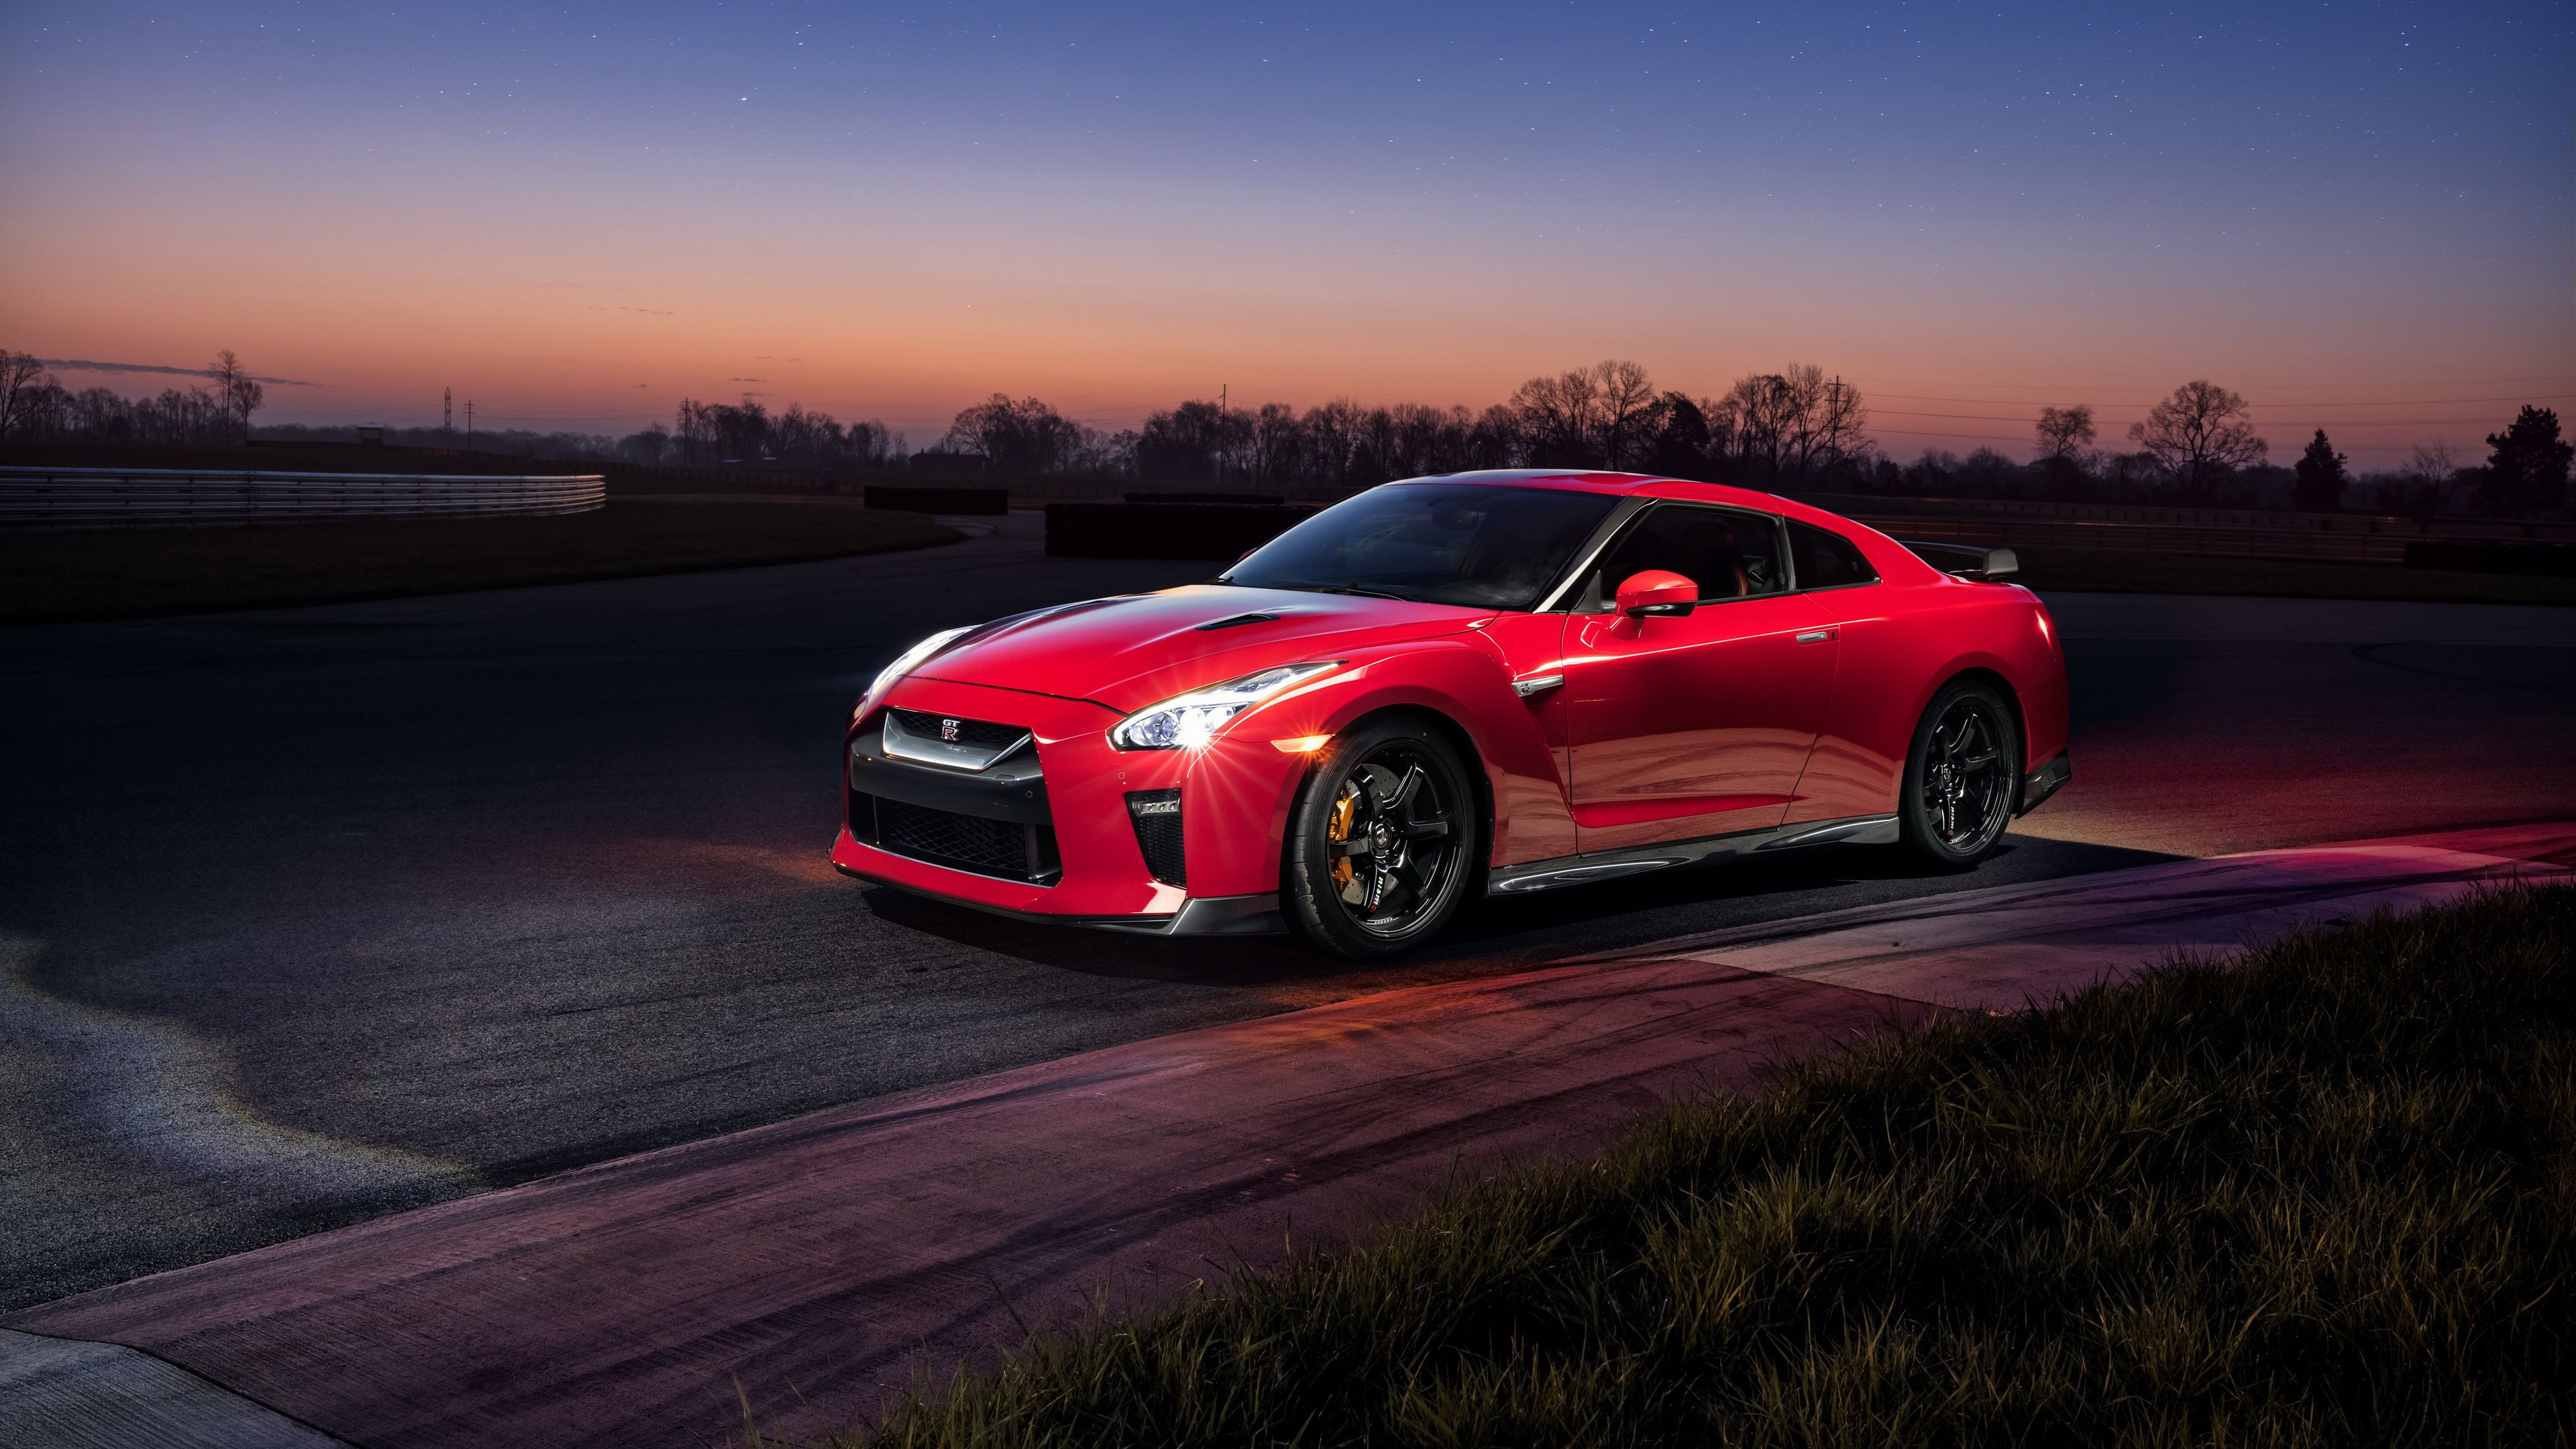 4k red nissan gtr wallpaper 71686